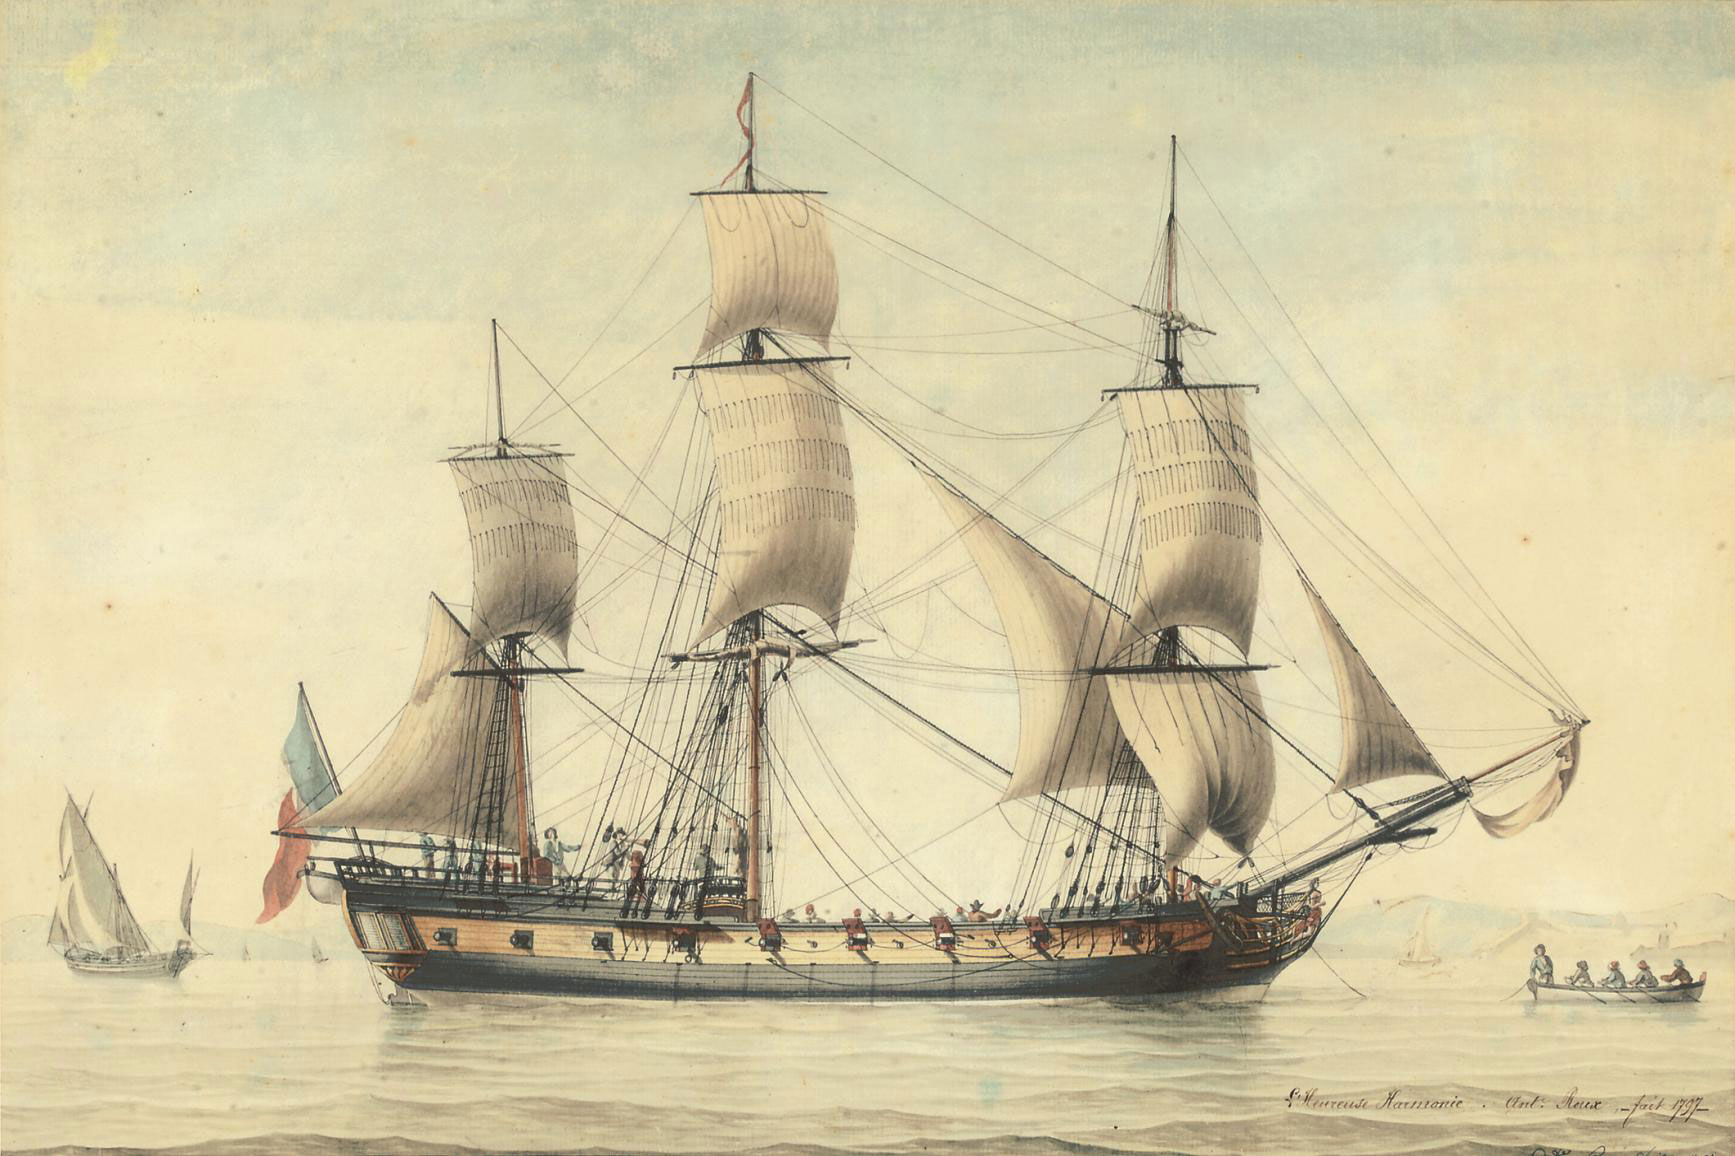 The French frigate L'Heureuse Harmonie with a tender laying out her anchor off Marseilles